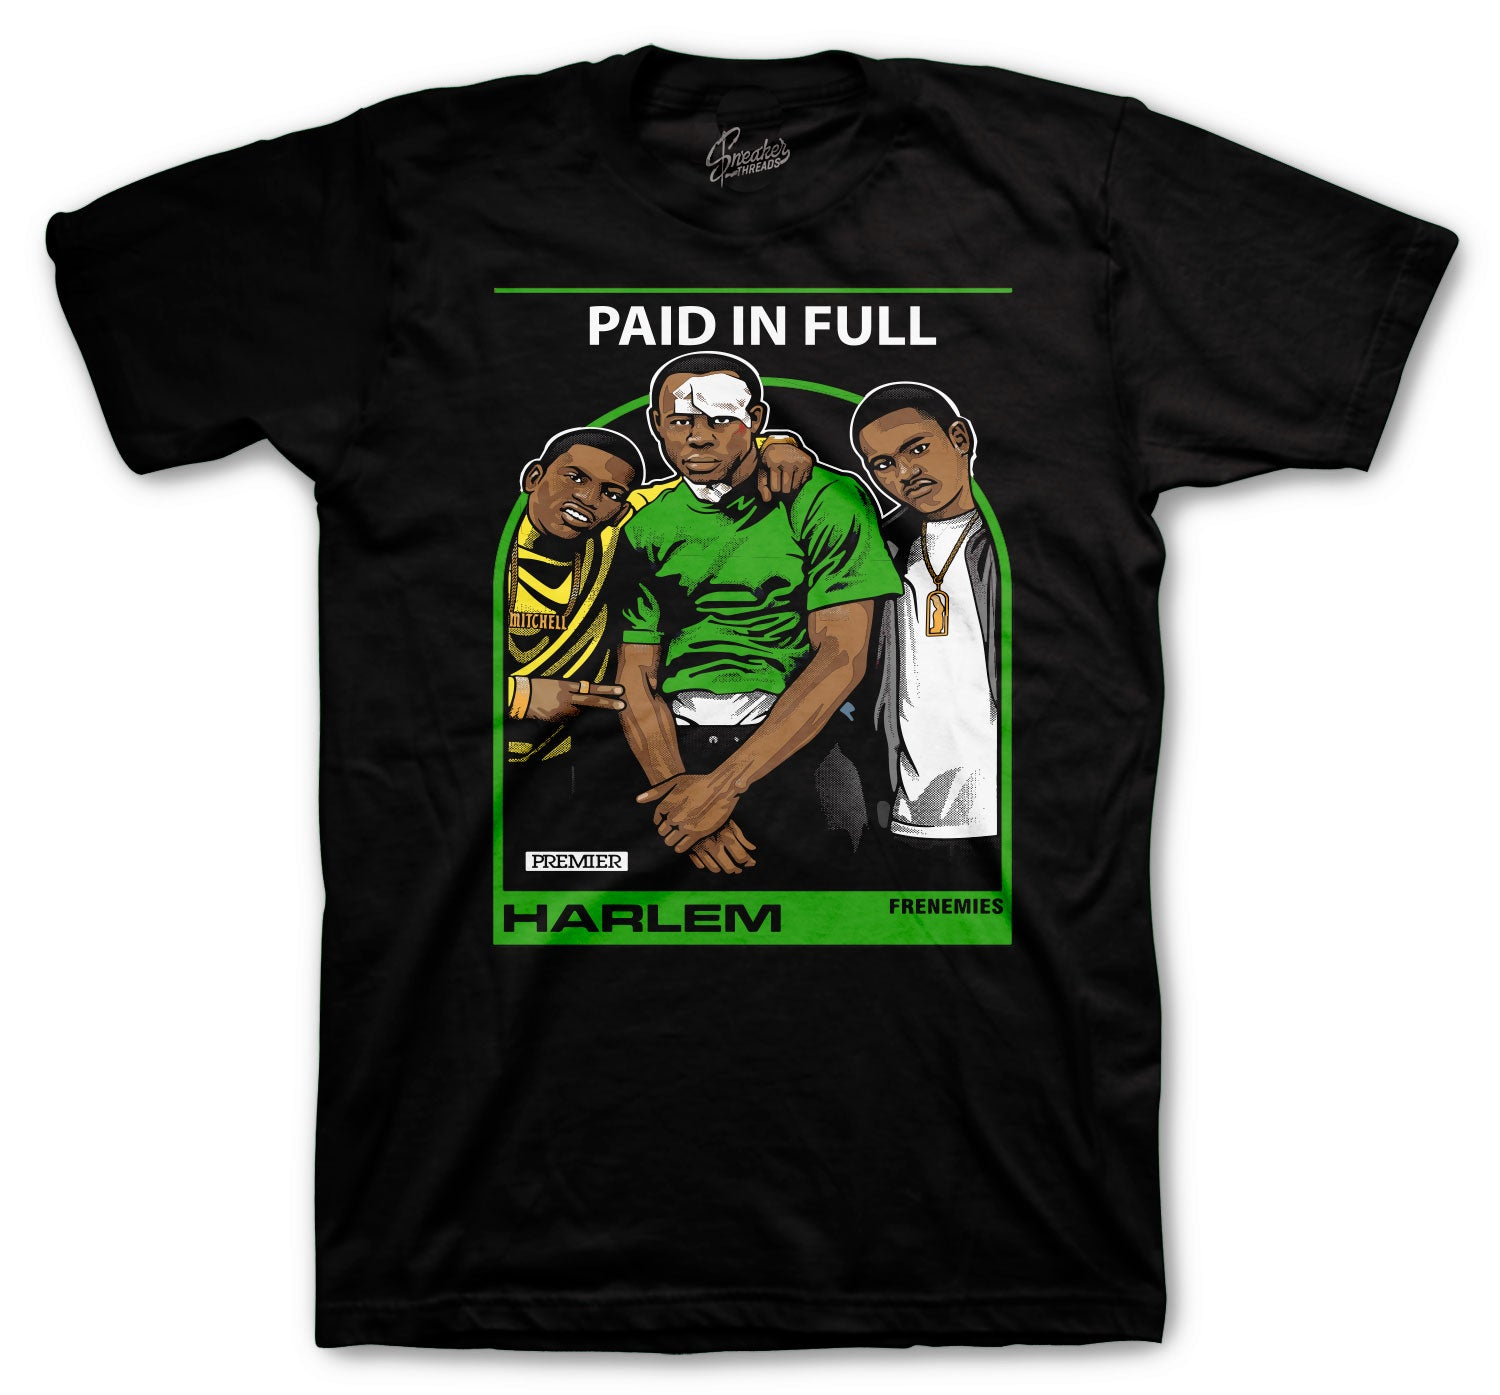 Jordan 5 Oregon Frenemies Shirt